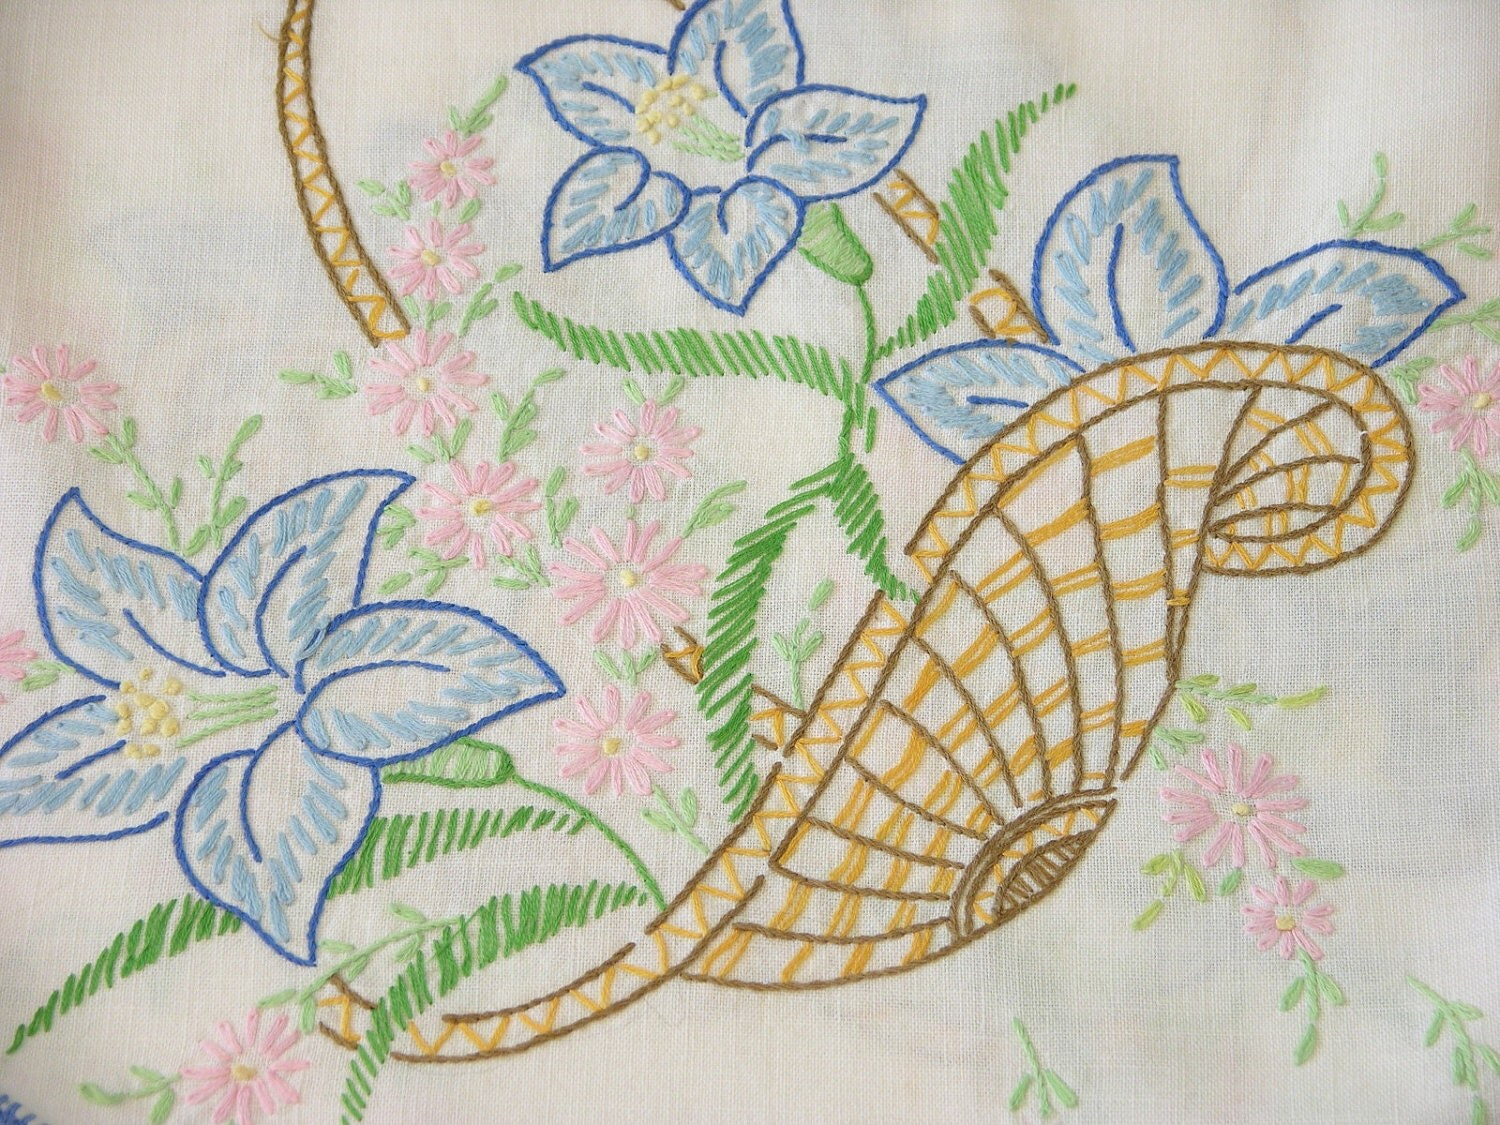 Free Flower Basket Embroidery Designs : Hand embroidery flower basket designs imgkid